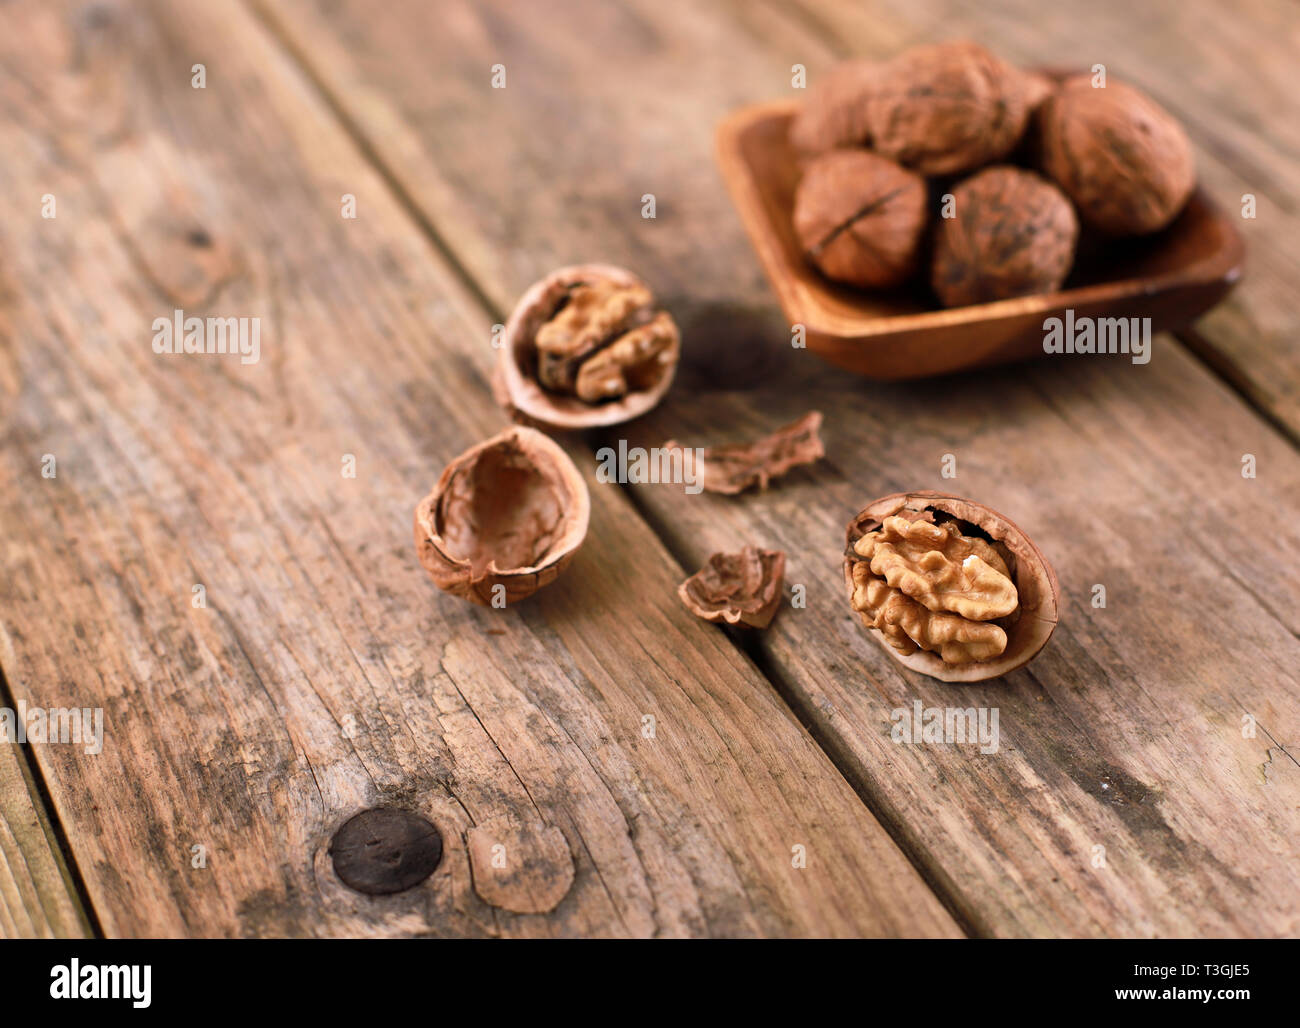 walnuts on a rustic wooden table - close up - walnuts broken up and closed - Stock Image